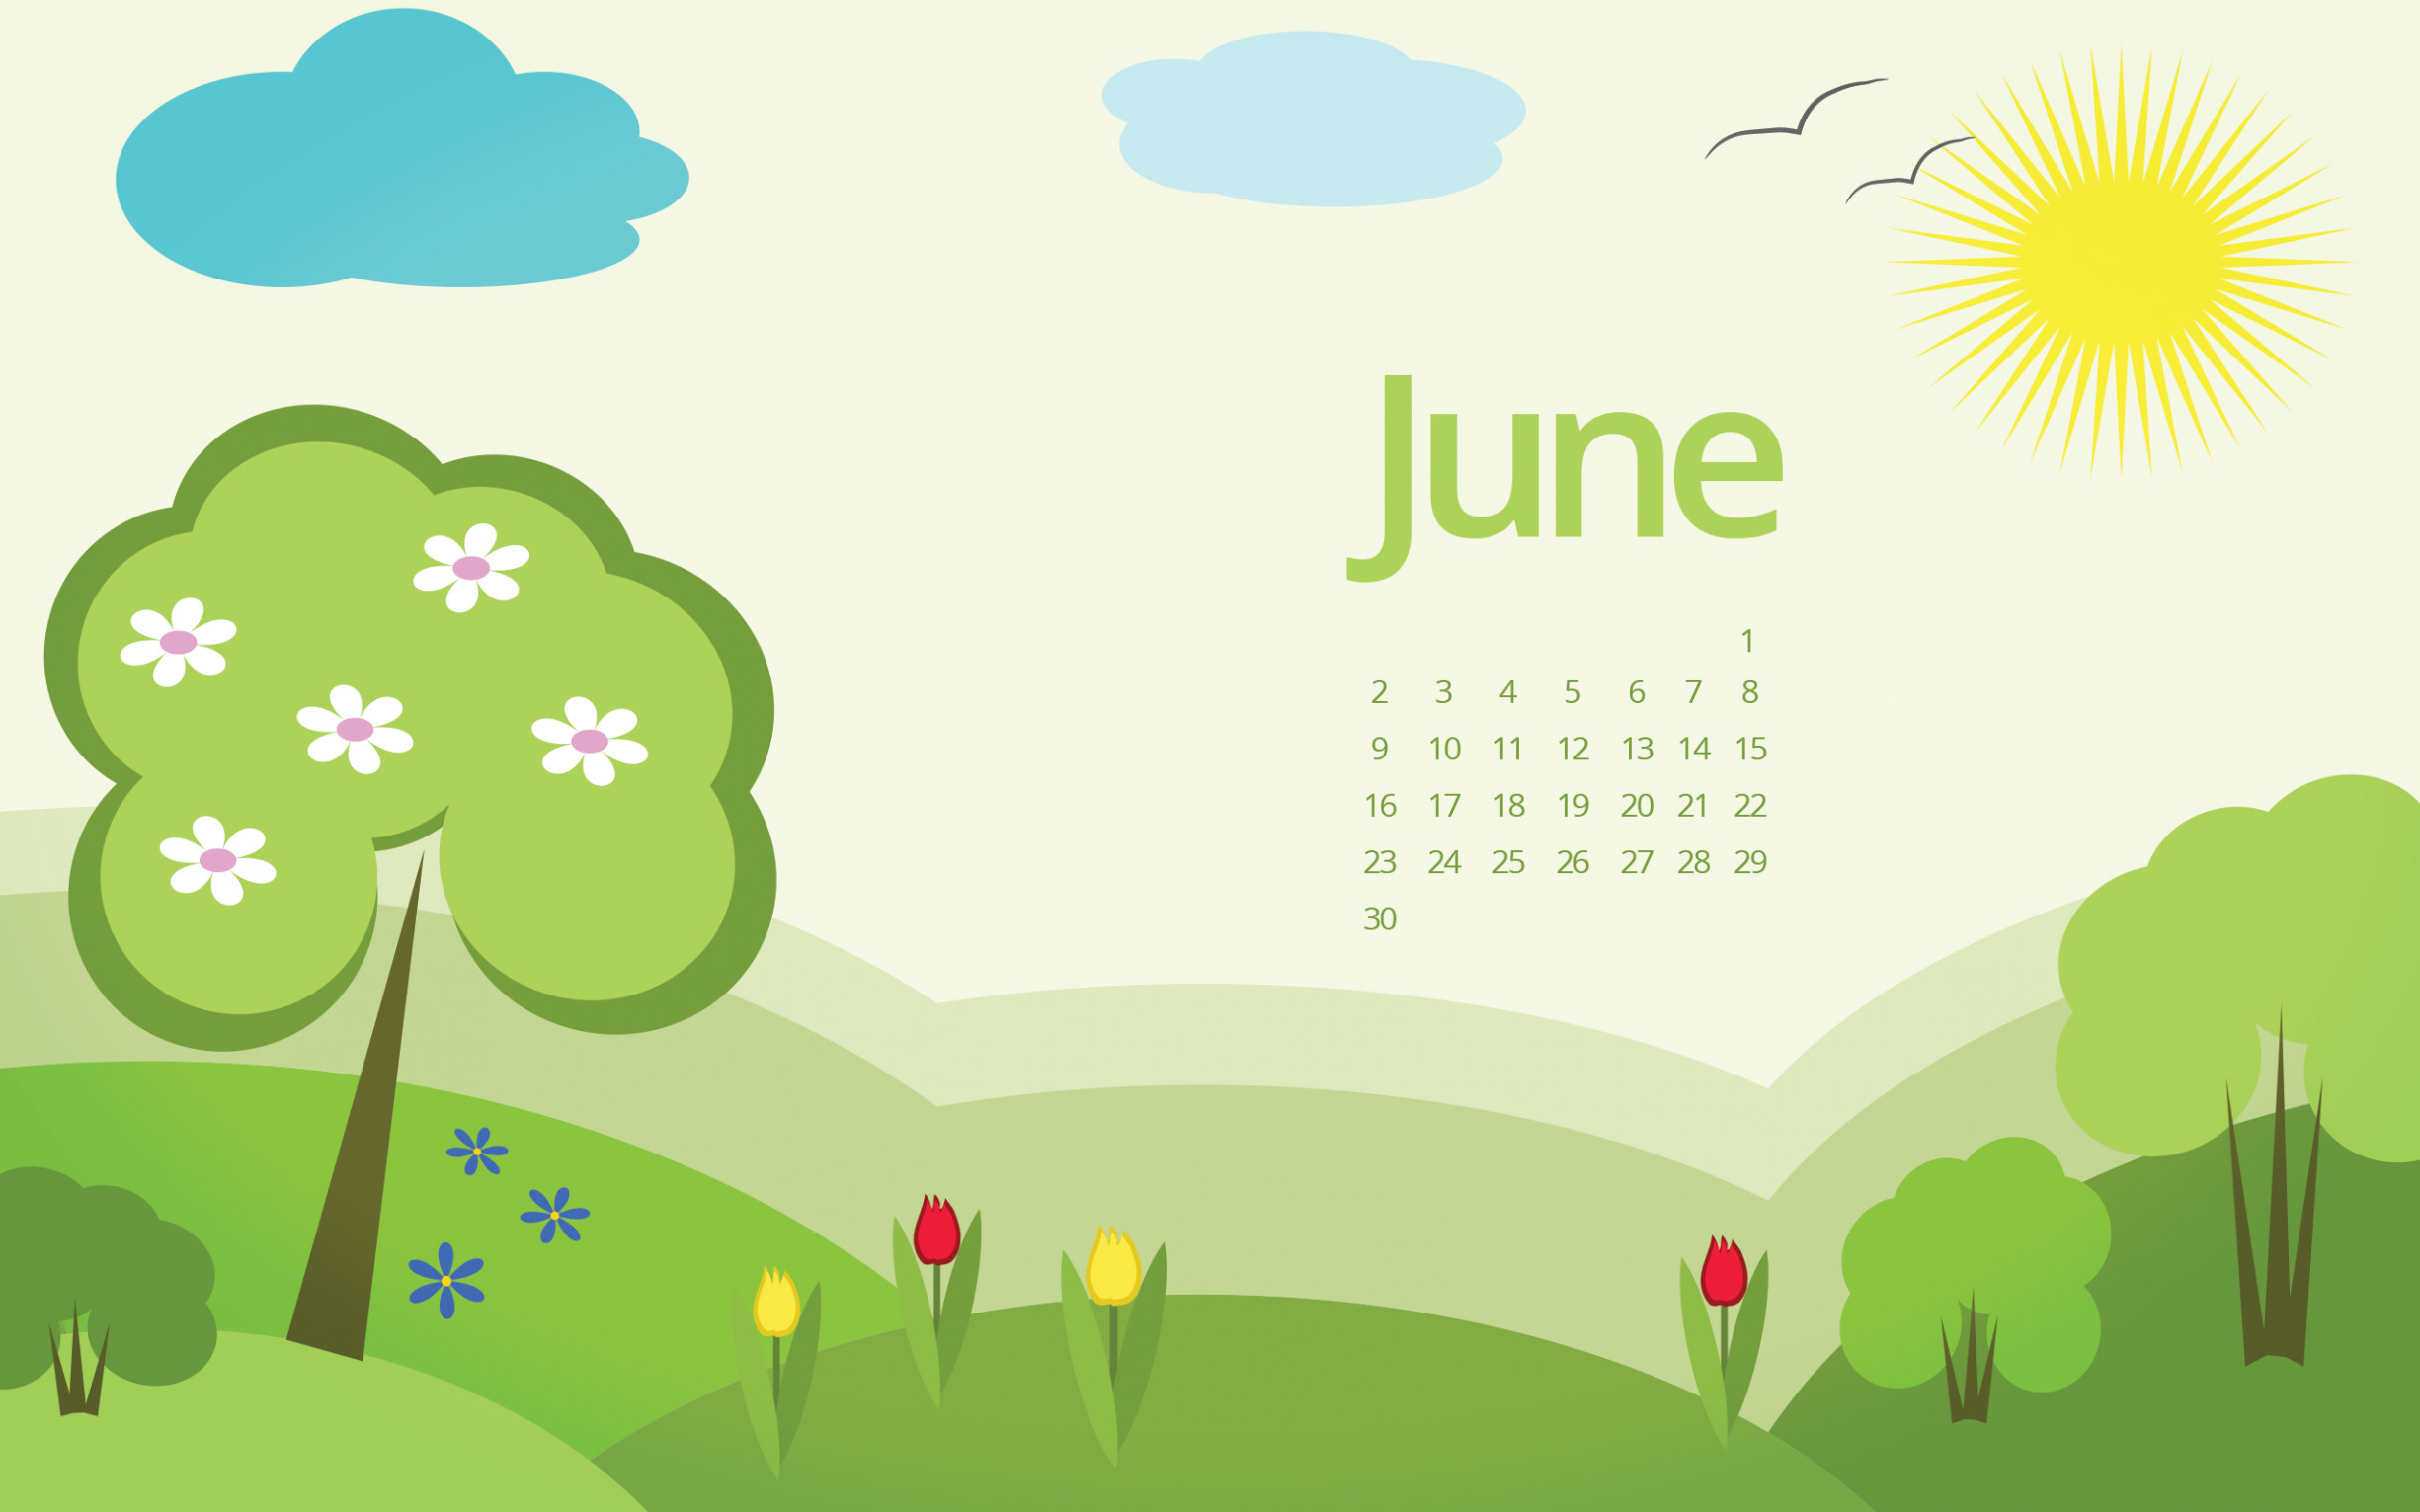 2450x1531 june 2017 desktop wallpaper · june 2017 calendar wallpaper